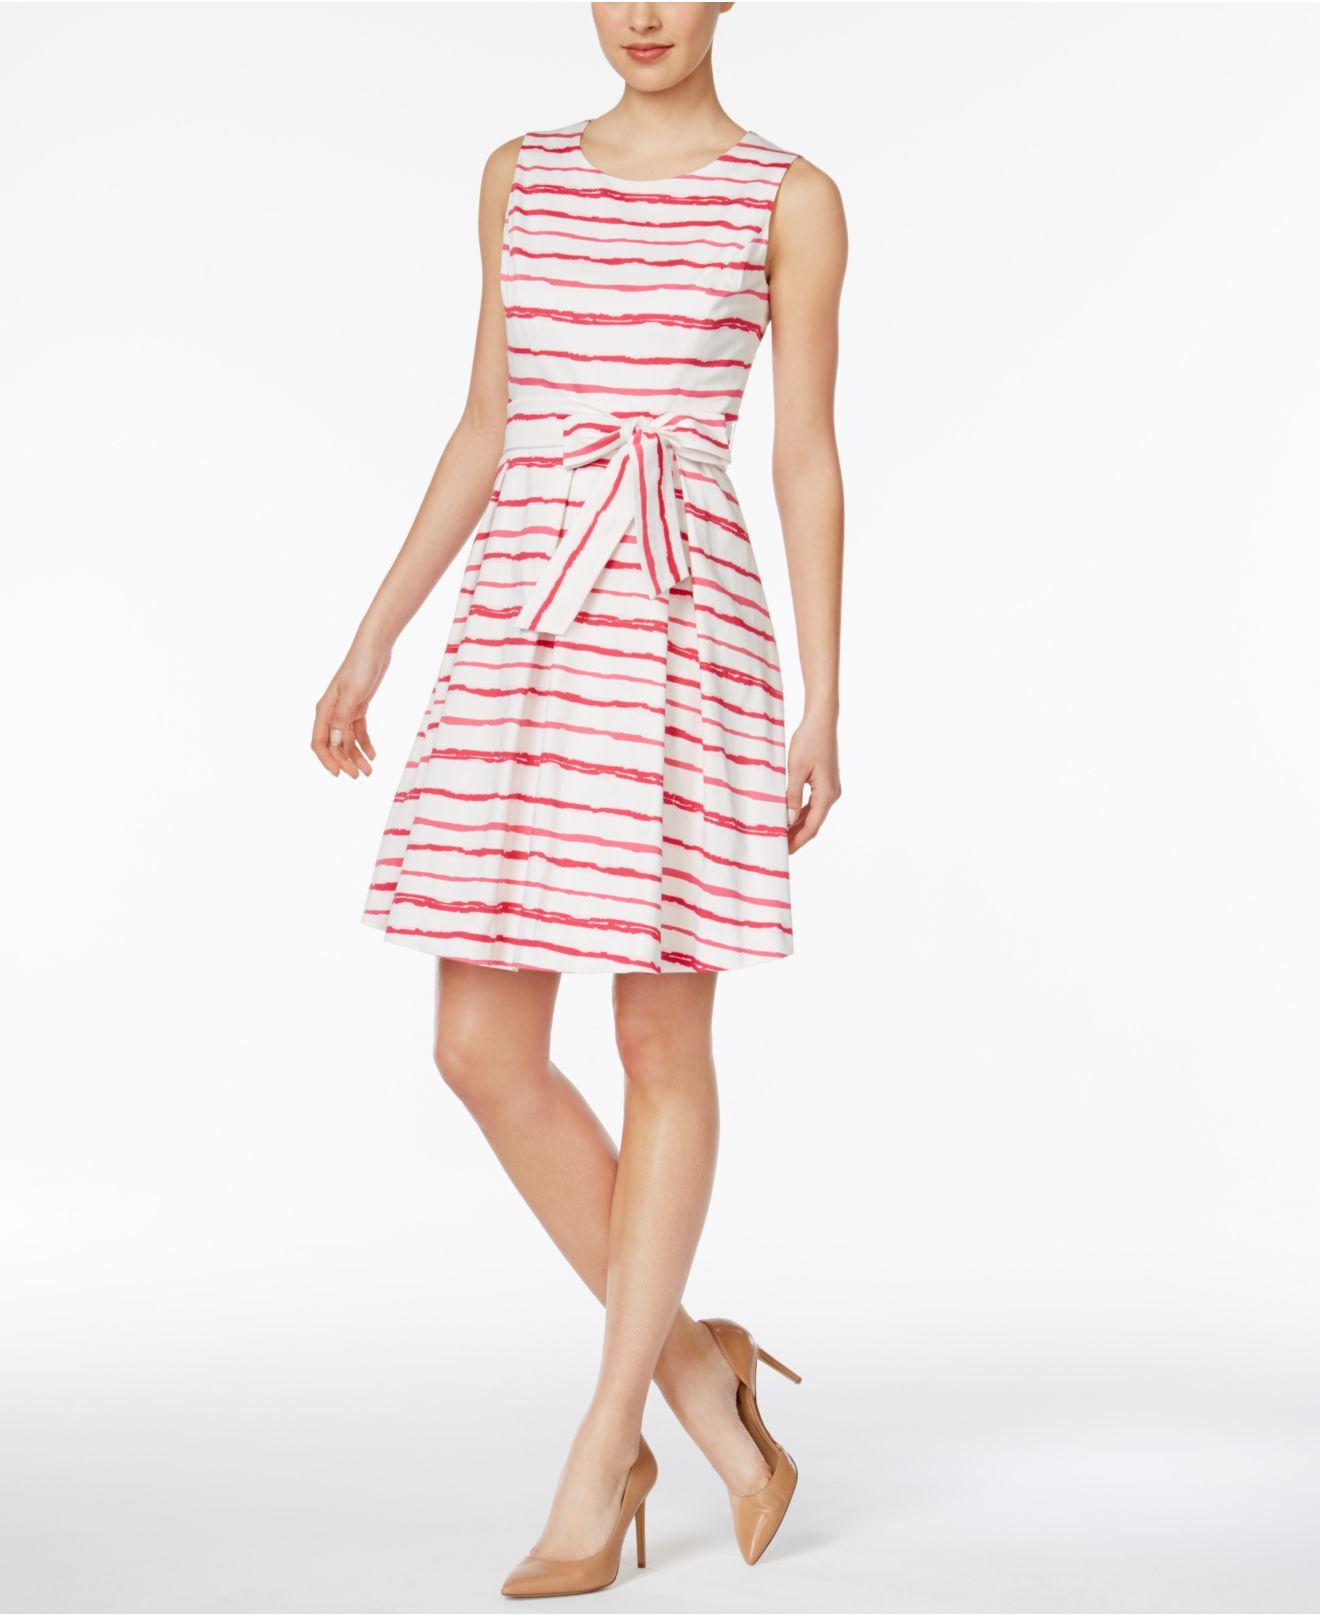 Nine West Striped Fit Amp Flare Dress Lyst